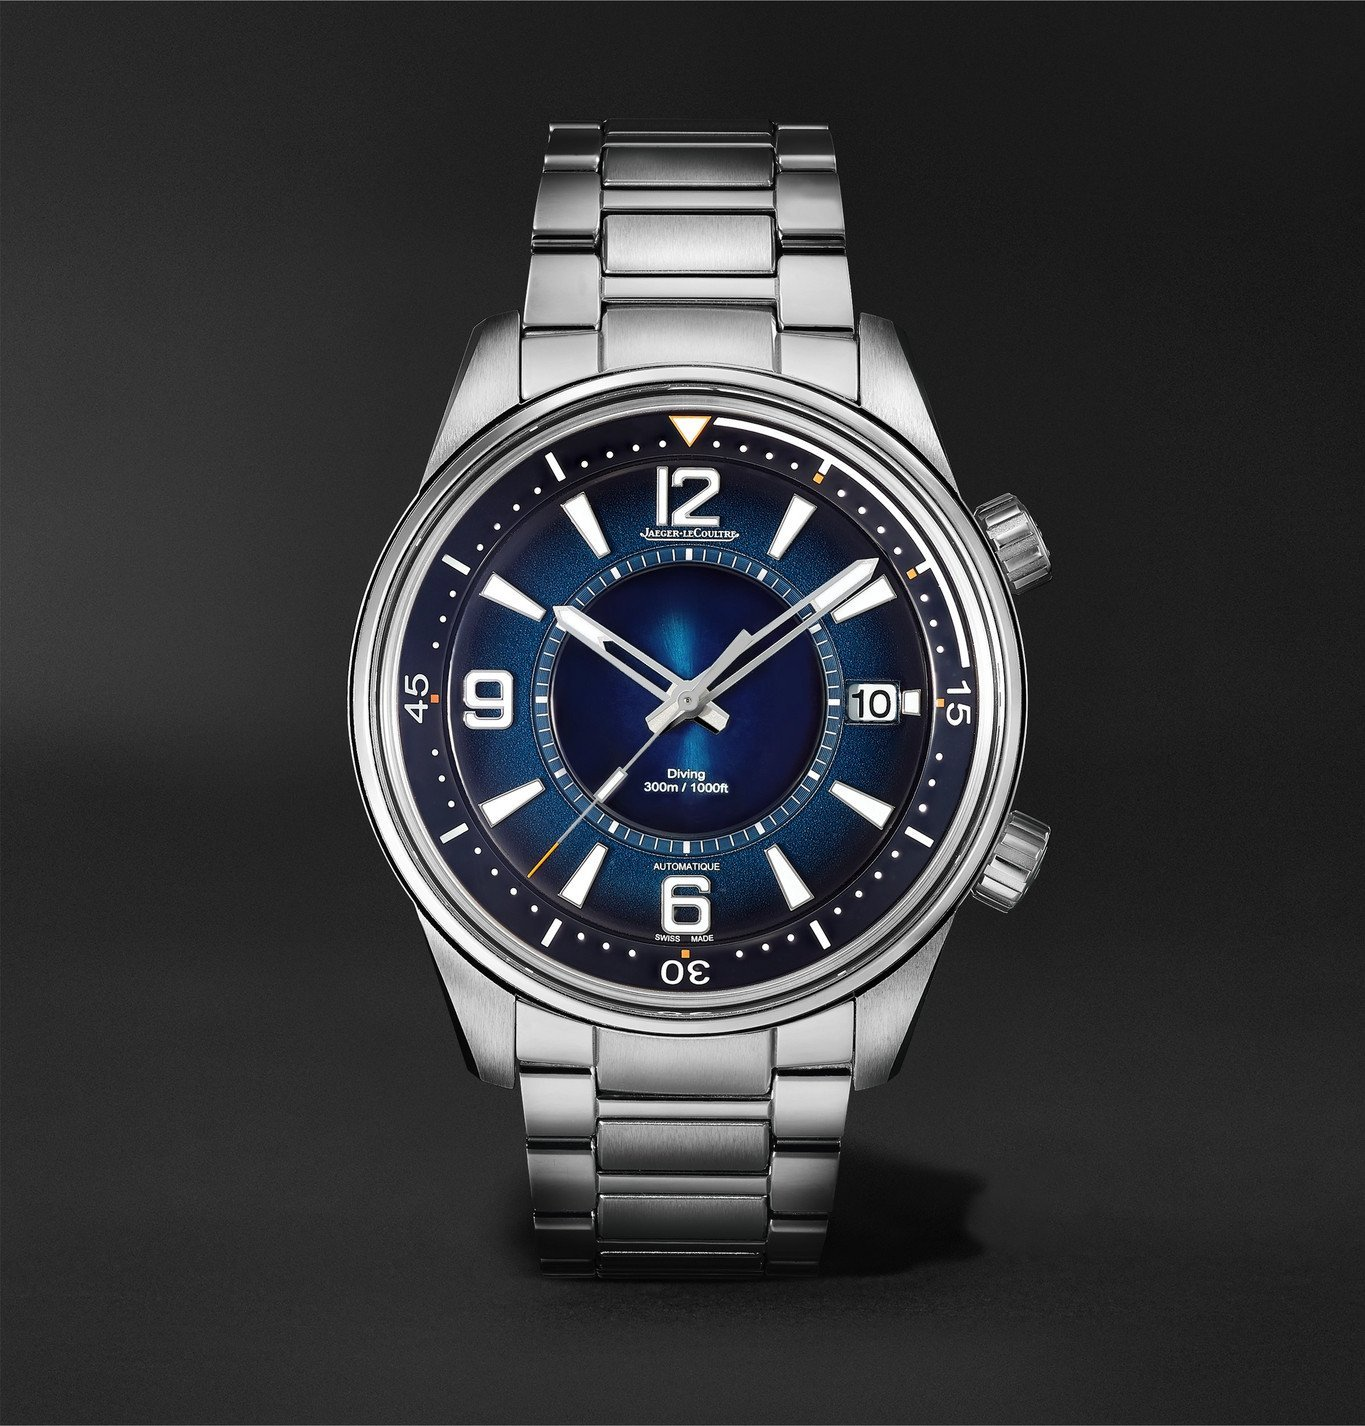 Photo: Jaeger-LeCoultre - Polaris Mariner Date Automatic 42mm Stainless Steel Watch, Ref. No. 9068180 - Blue